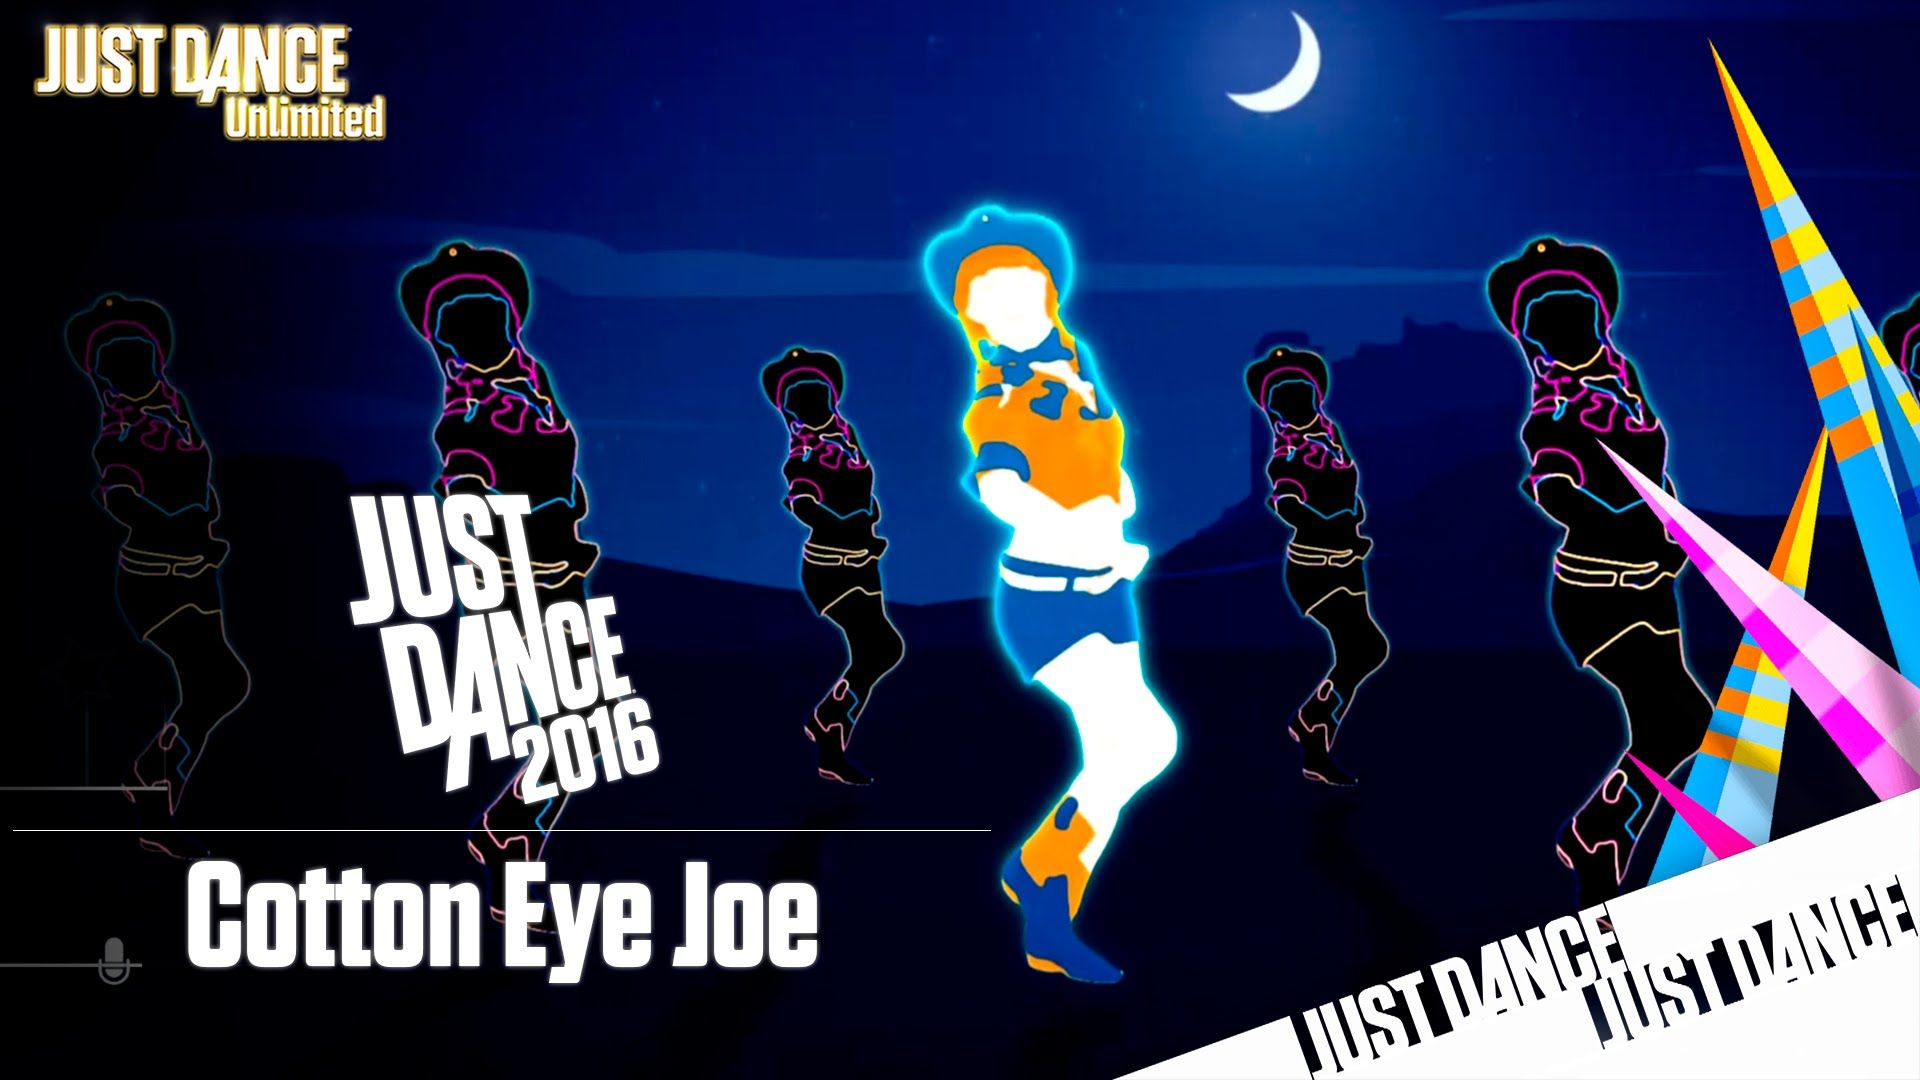 Just Dance Unlimited Cotton Eye Joe Just Dance Dance Videos Youtube